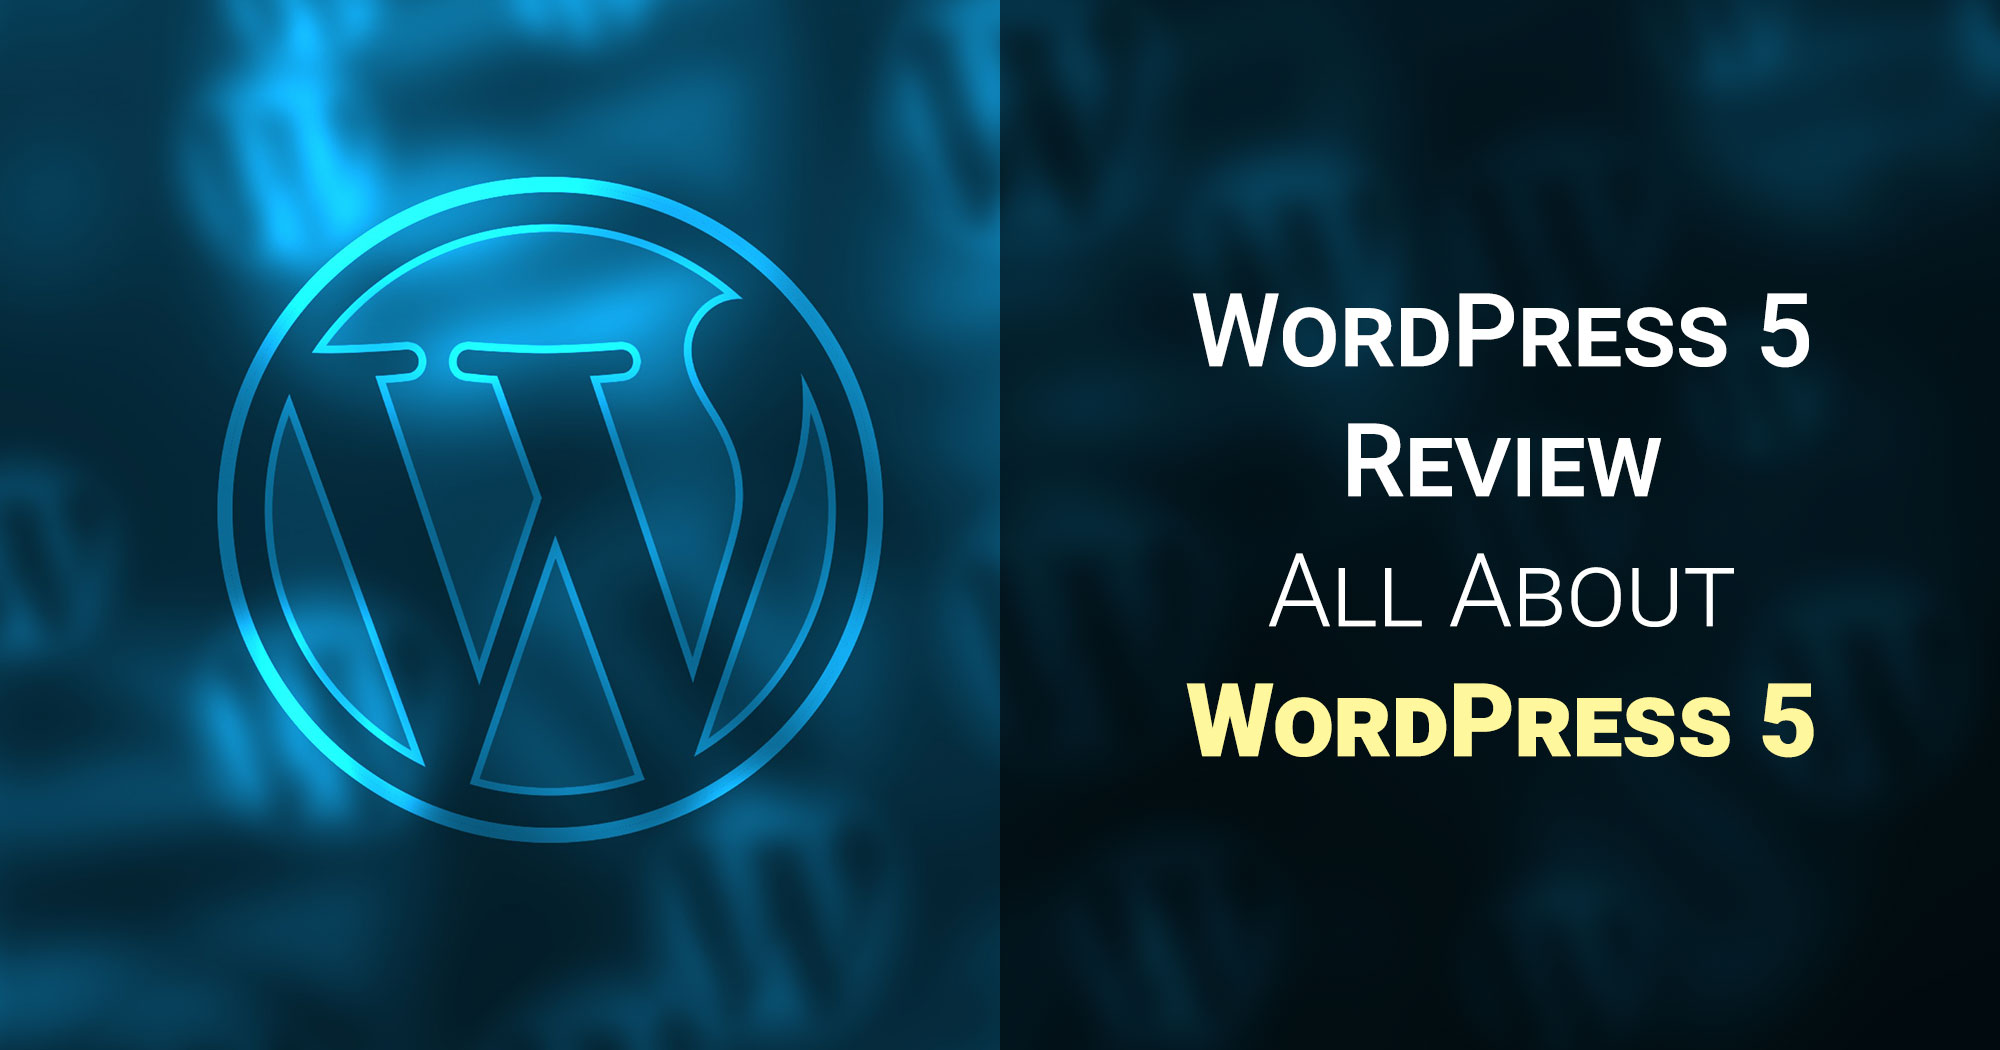 WordPress 5 Review